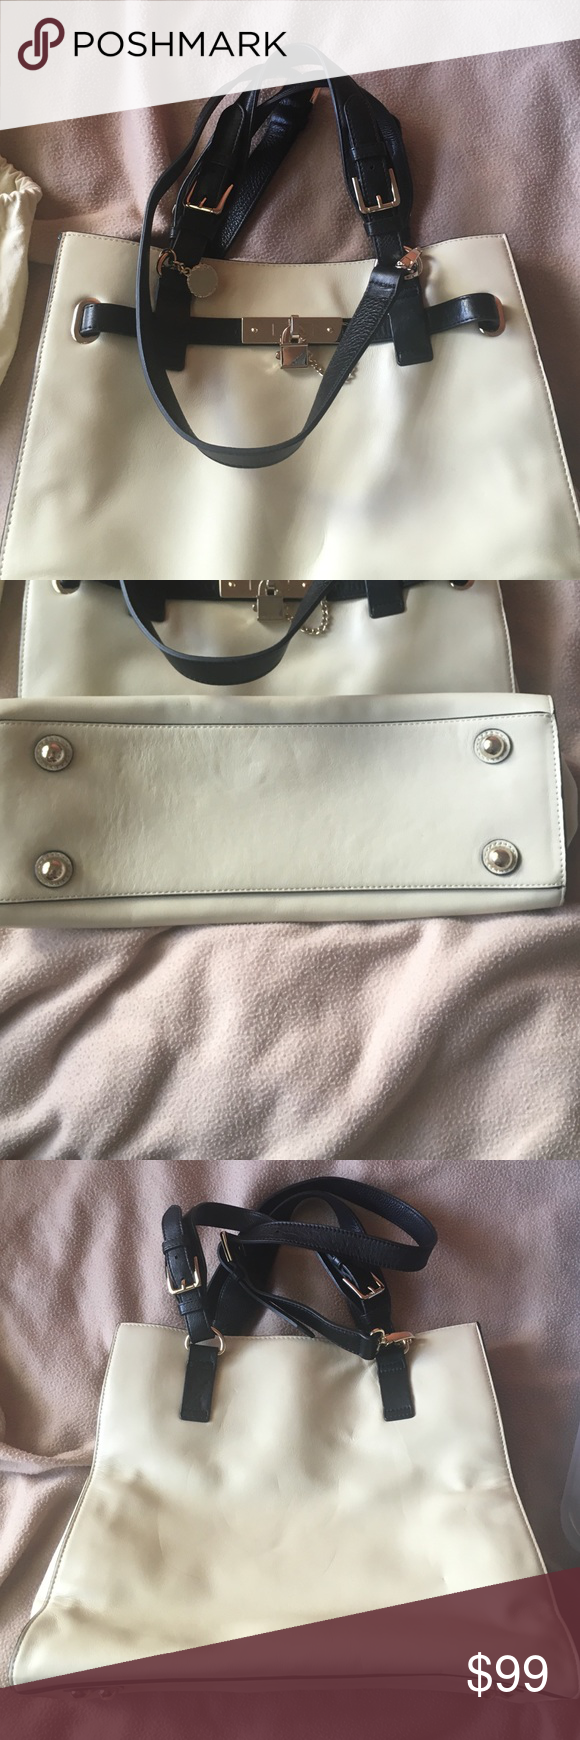 Pictures Of Reiss Bleecker Structured Leather Extra That You May Purchase